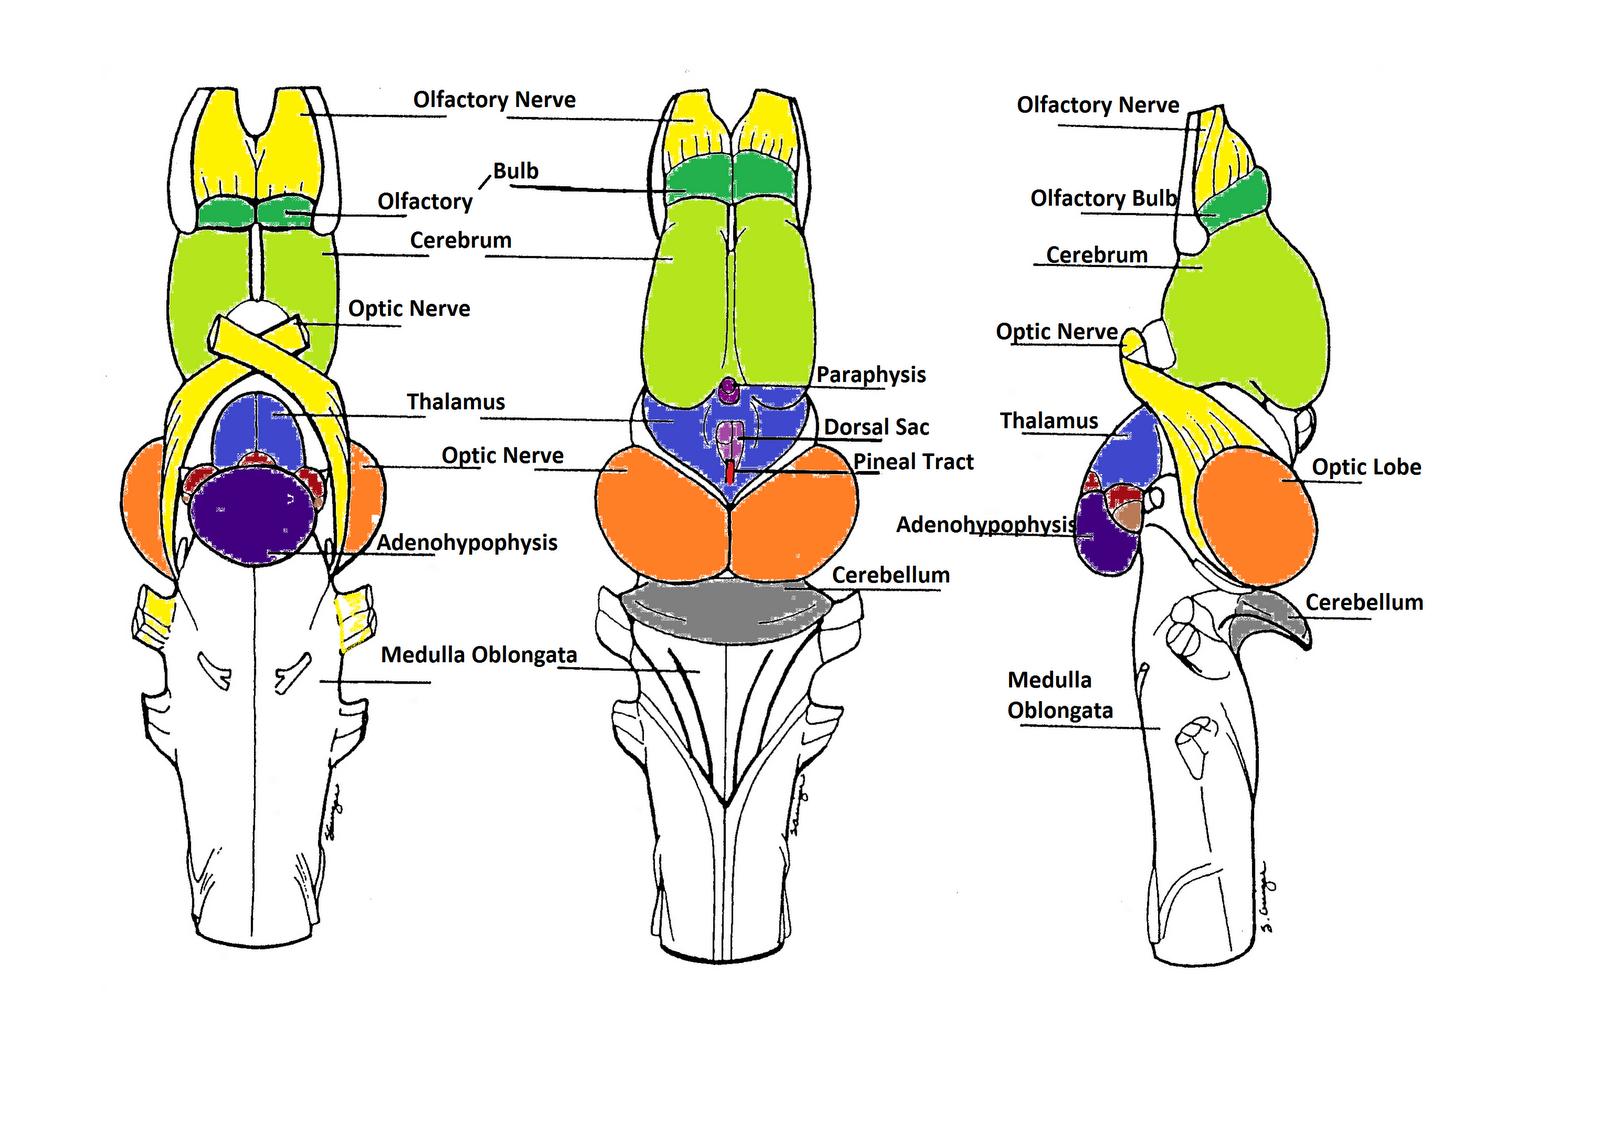 the most anterior portion of the leopard frog brain is are the The section of the brain that consists of the most anterior (in man, the topmost) part of the brain stem, over which the cerebral hemispheres are located inferiorly and posteriorly, the diencephalon borders on the mesencephalon (midbrain.